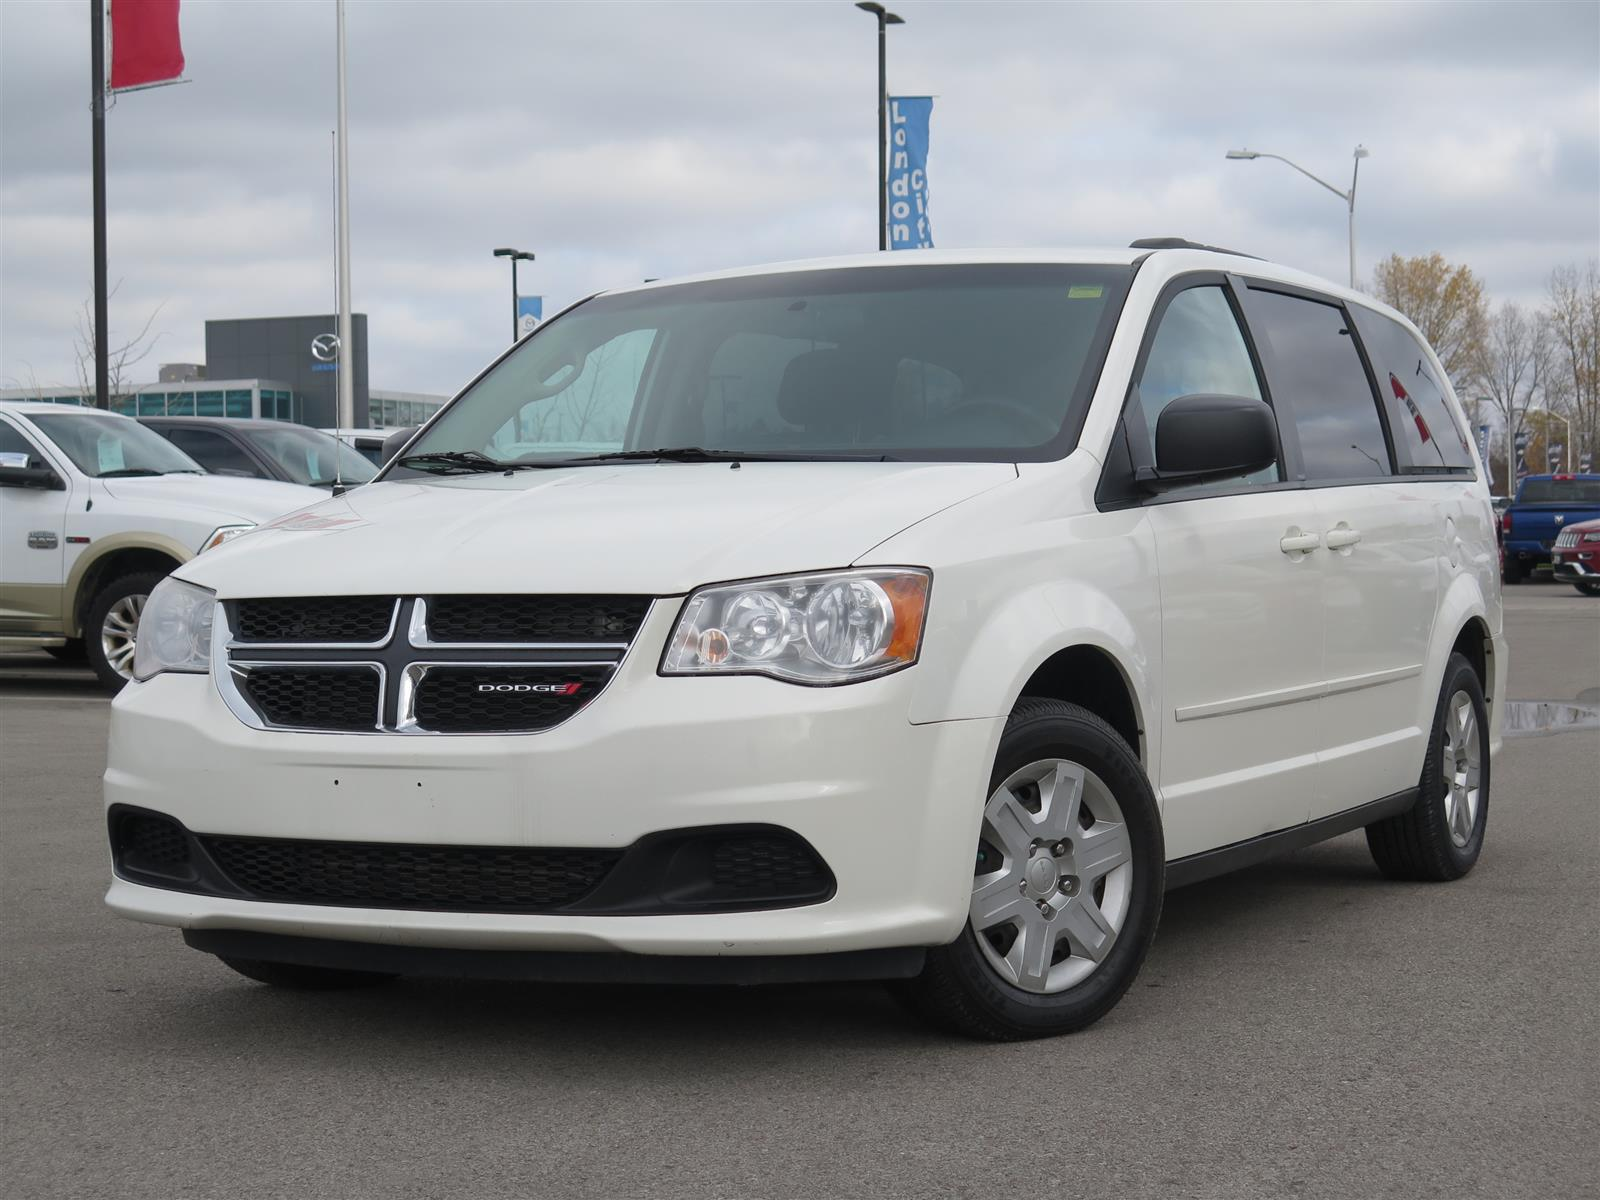 New Vehicle Inventory At London City Chrysler Autos Post